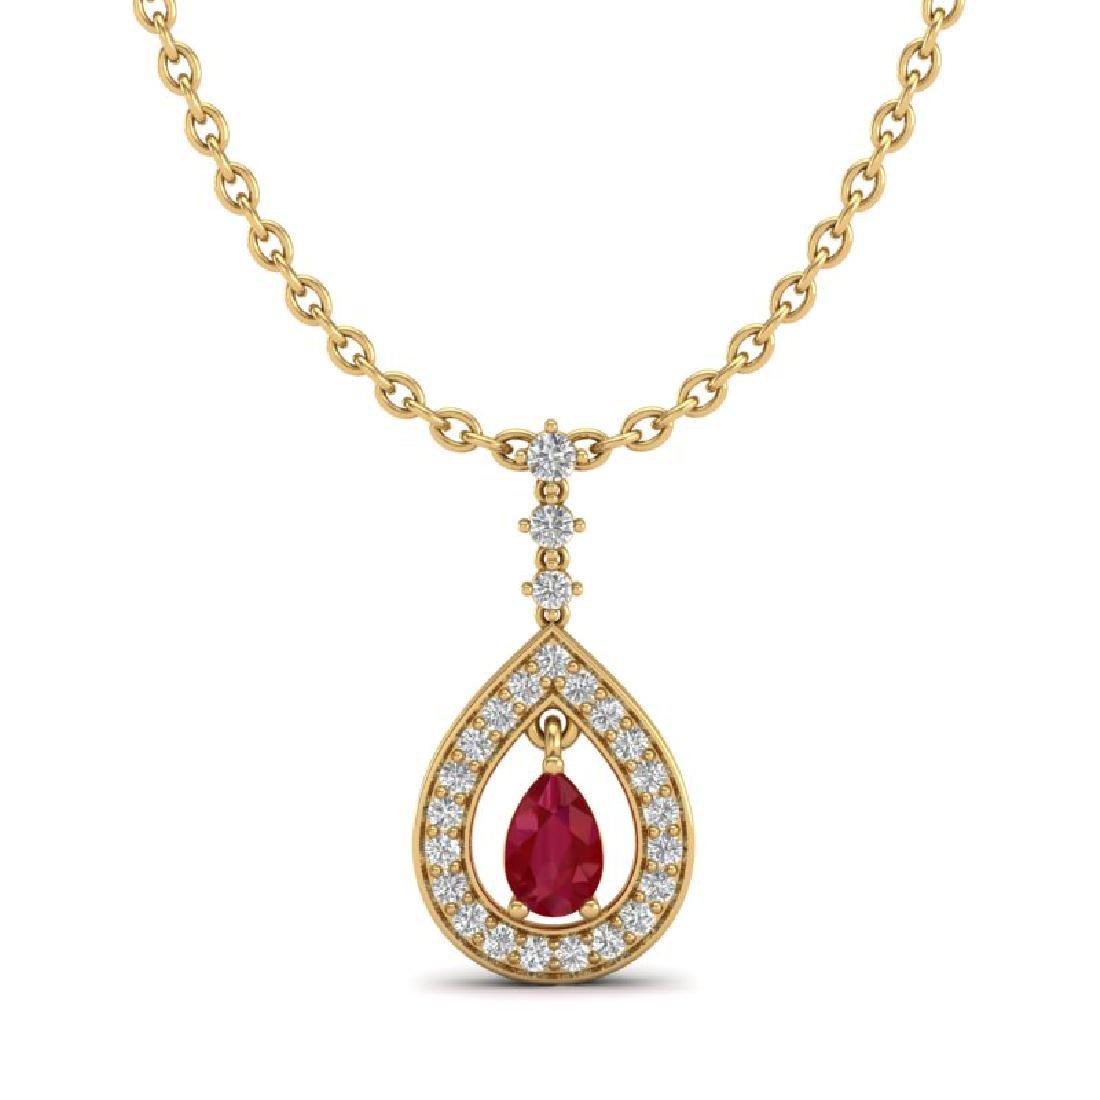 1.15 CTW Ruby & Micro Pave VS/SI Diamond Necklace - 2